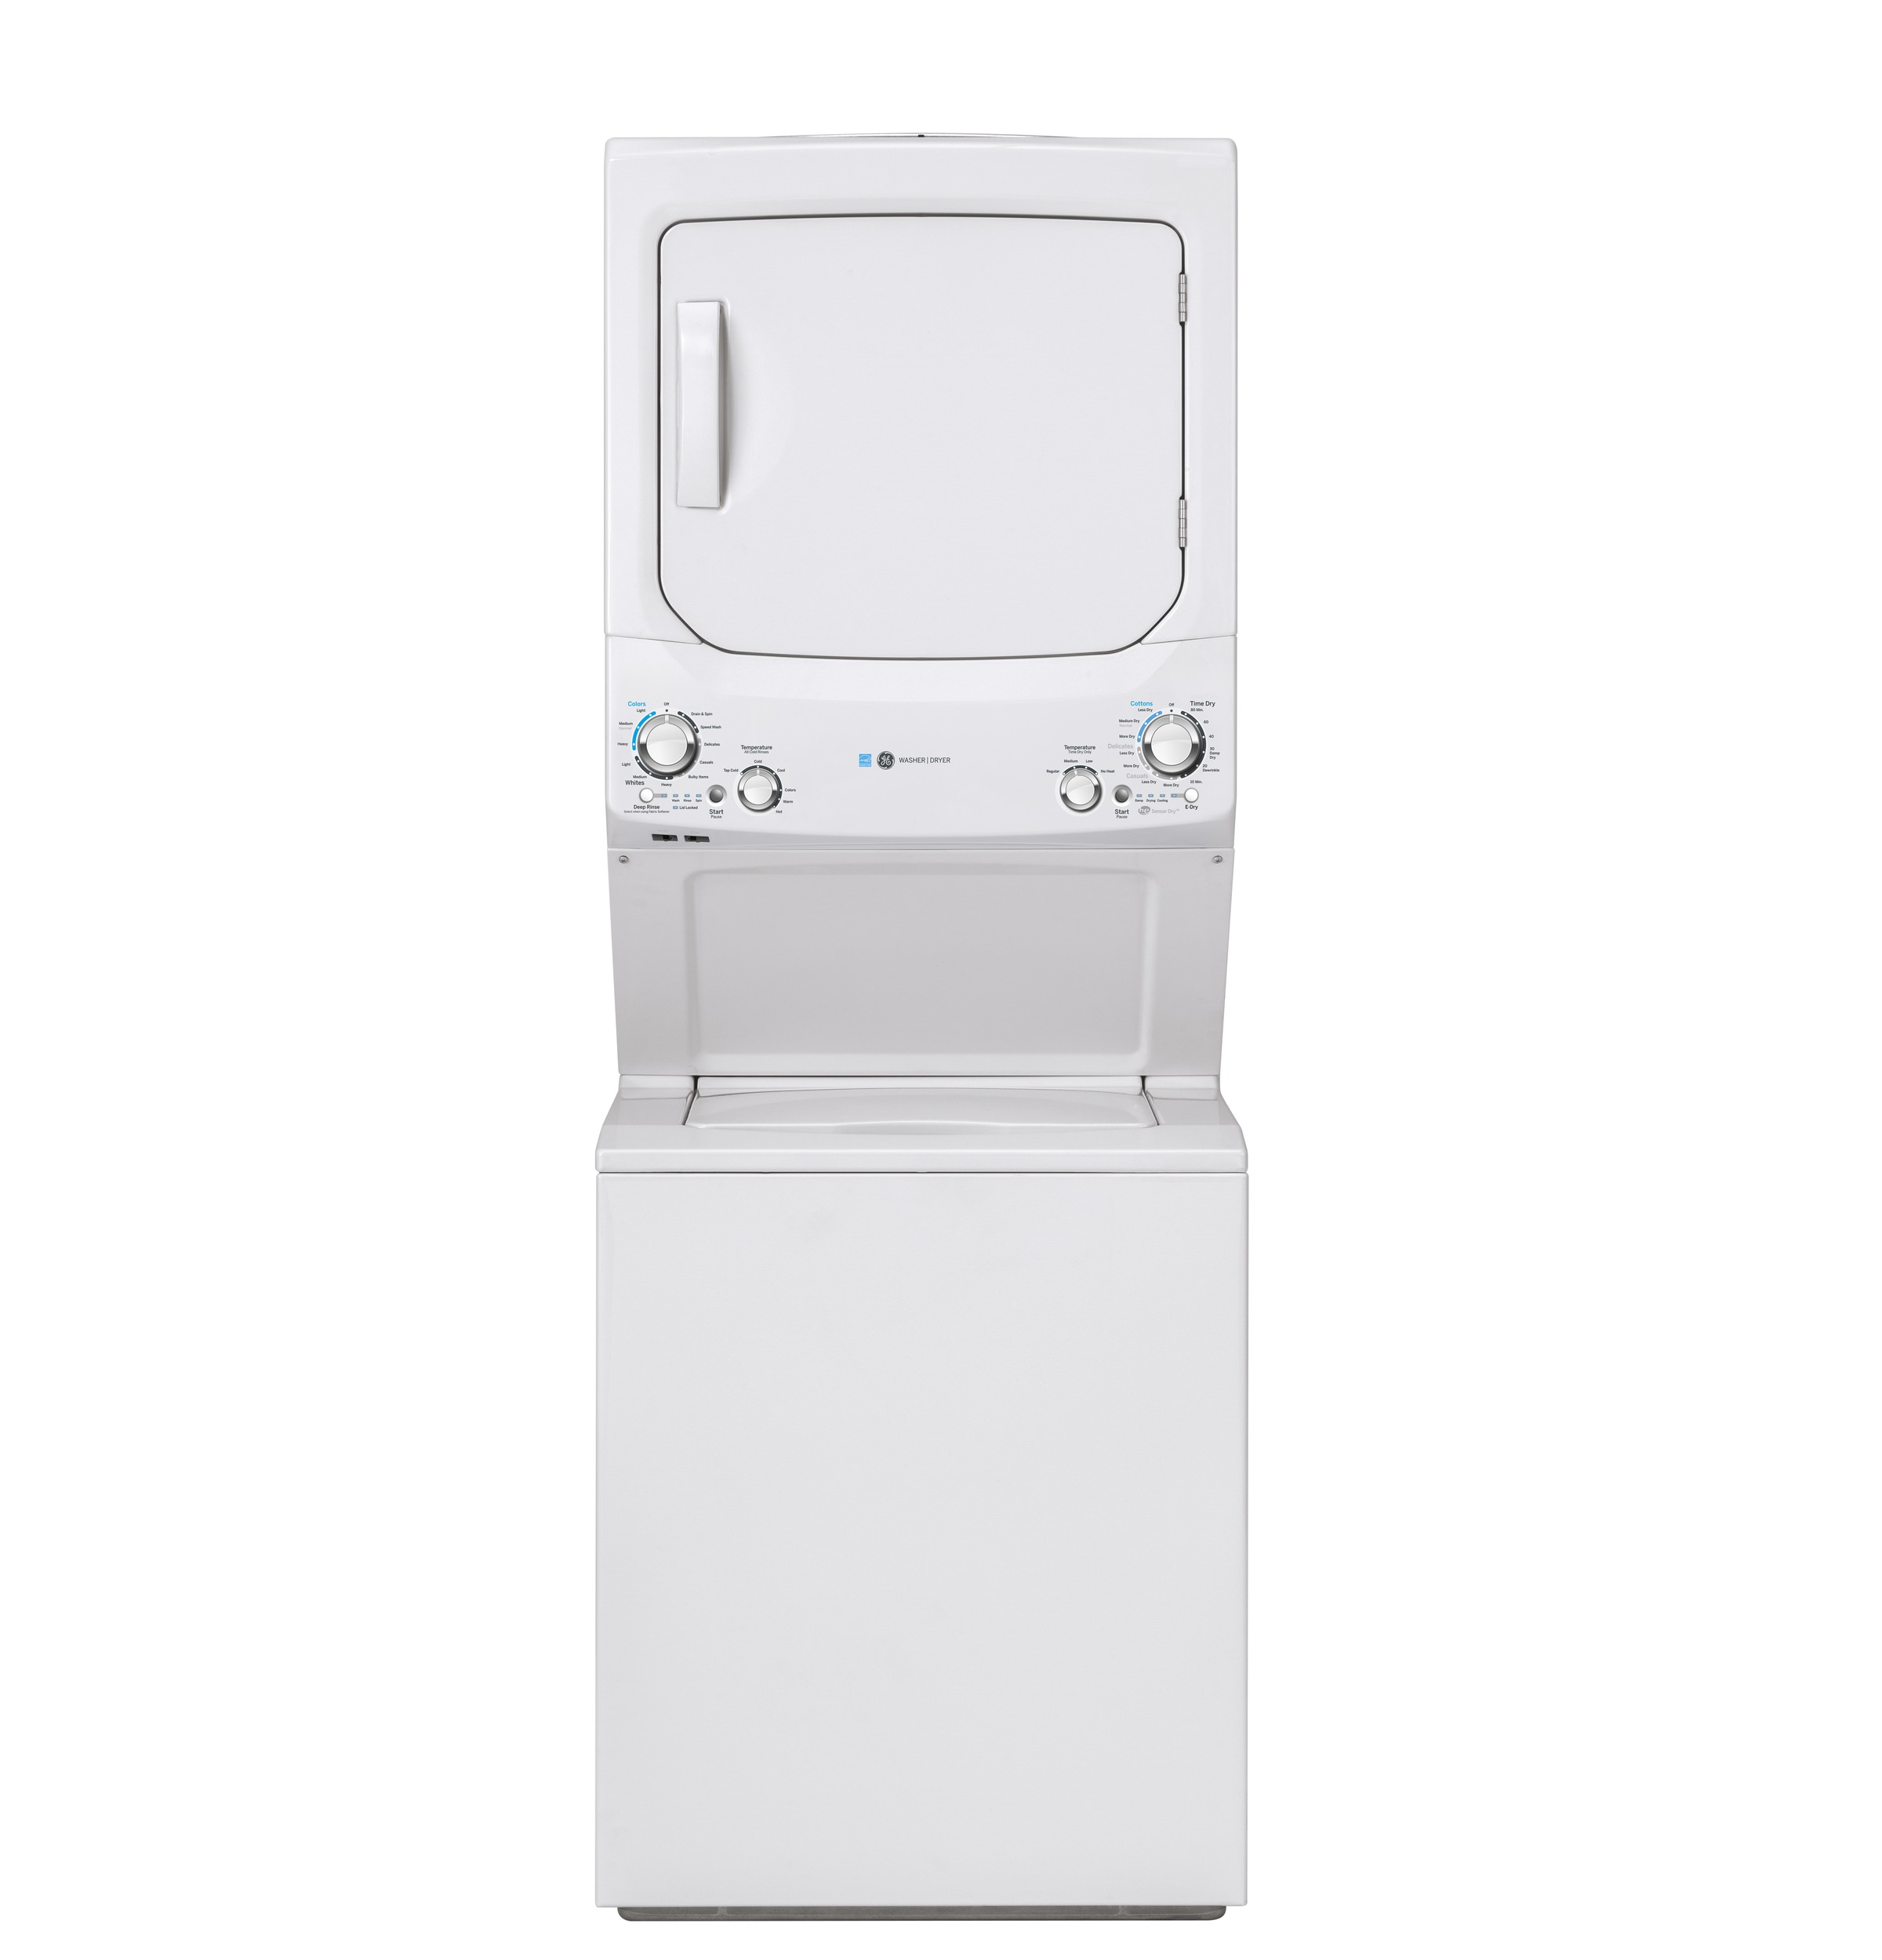 GE GE Unitized Spacemaker® 3.9 cu. ft. Capacity Washer with Stainless Steel Basket and 5.9 cu. ft. Capacity Electric Dryer